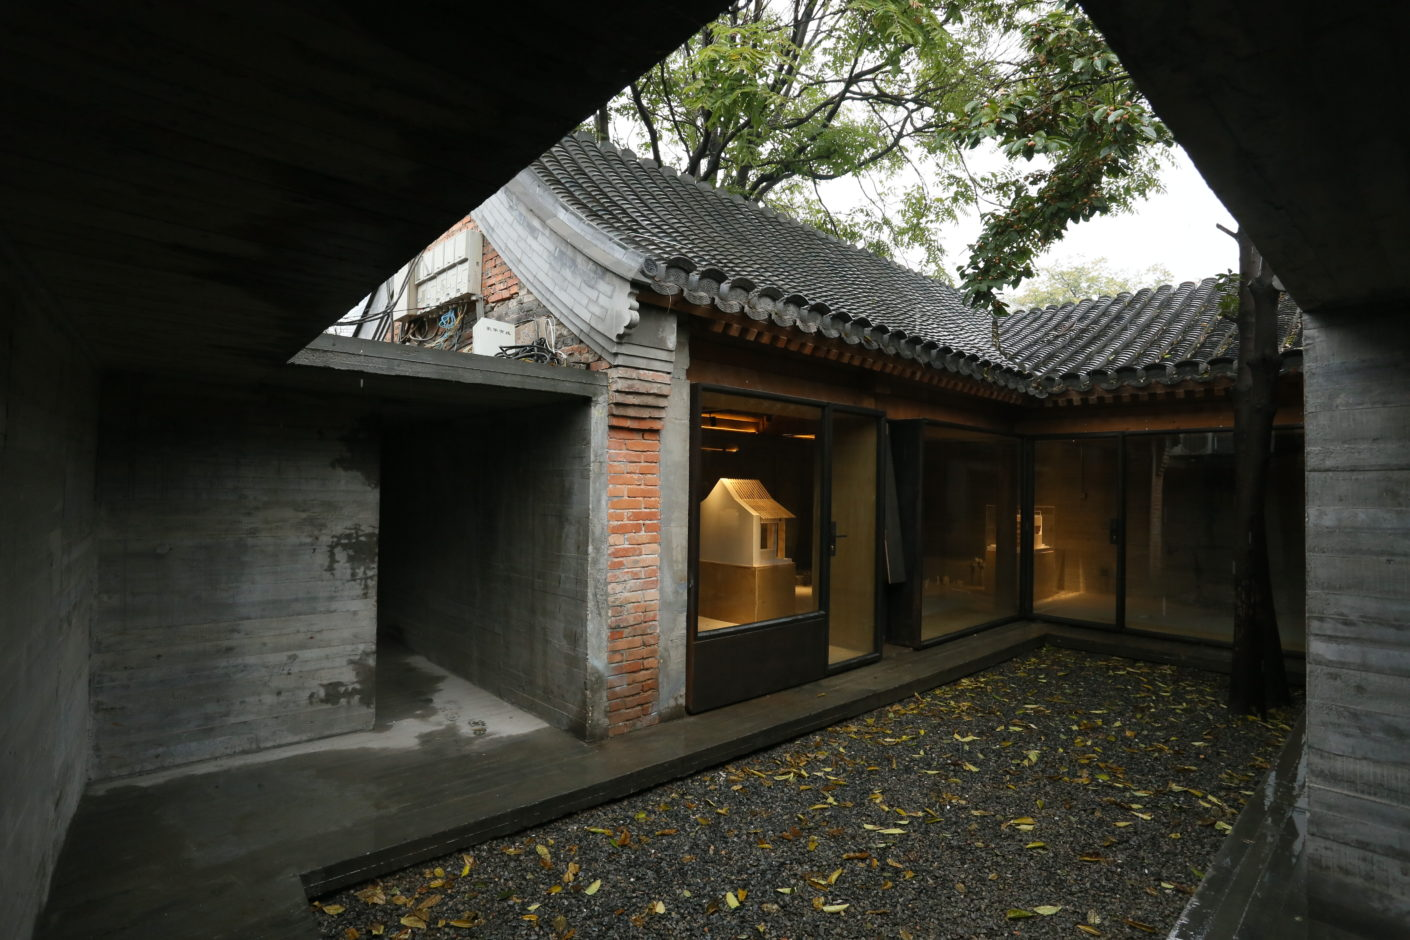 Co Living Courtyard by Zhang Ke, Standardarchitecture, in Baitasi Hutong, Beijing, for the Beijing Design Week 2016